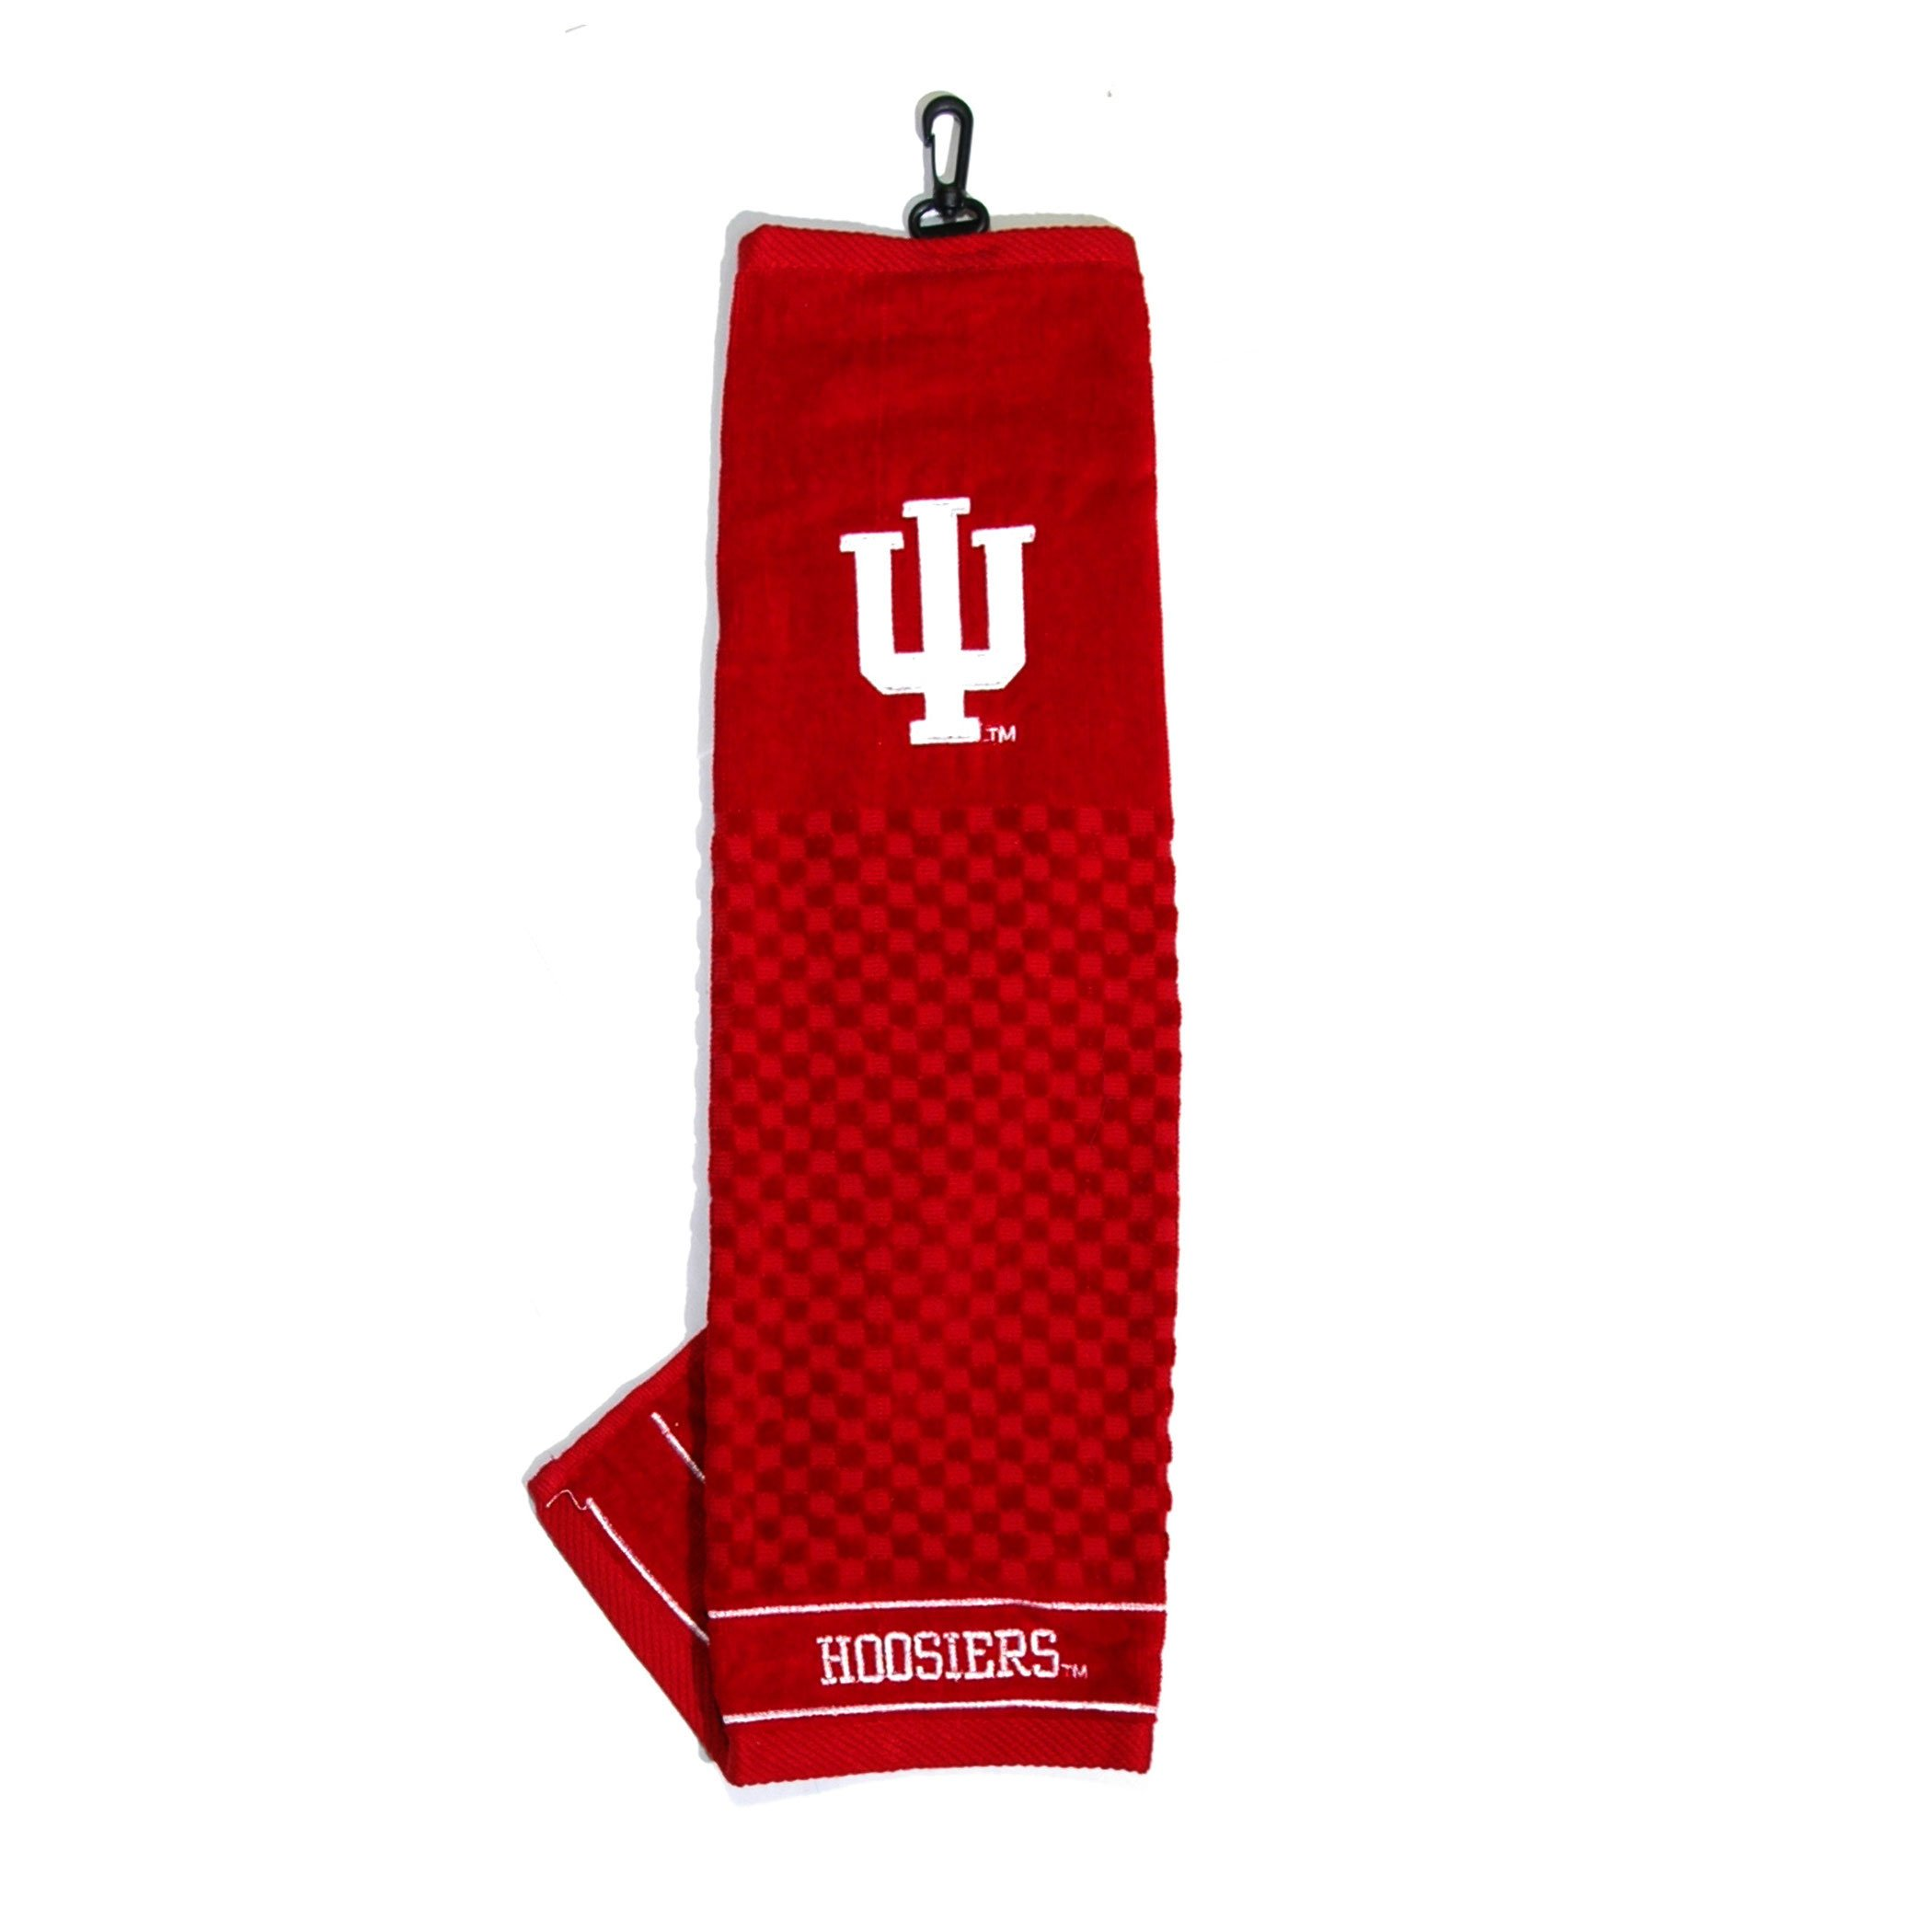 Team Golf NCAA Indiana Hoosiers Embroidered Golf Towel, Checkered Scrubber Design, Embroidered Logo